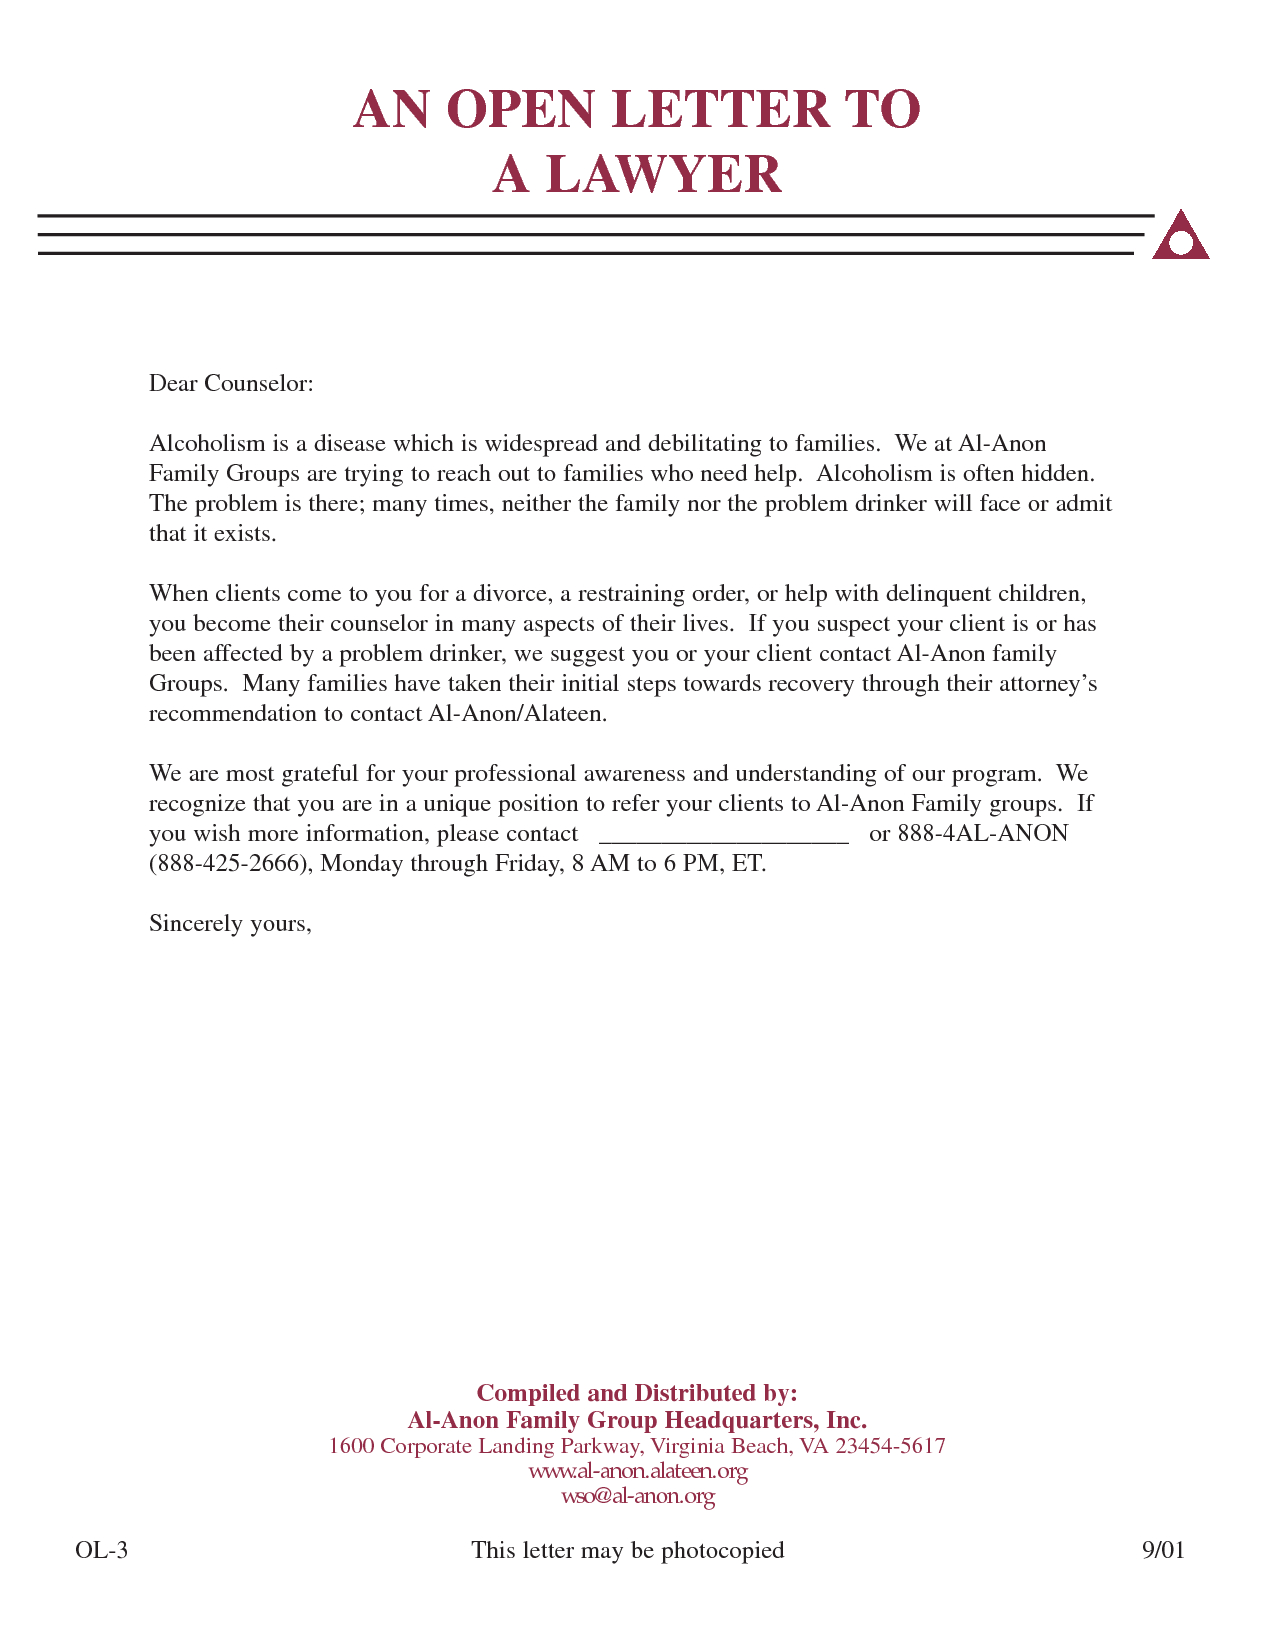 Client Termination Letter Template - How to Write A Letter Engagement Gallery Letter format formal